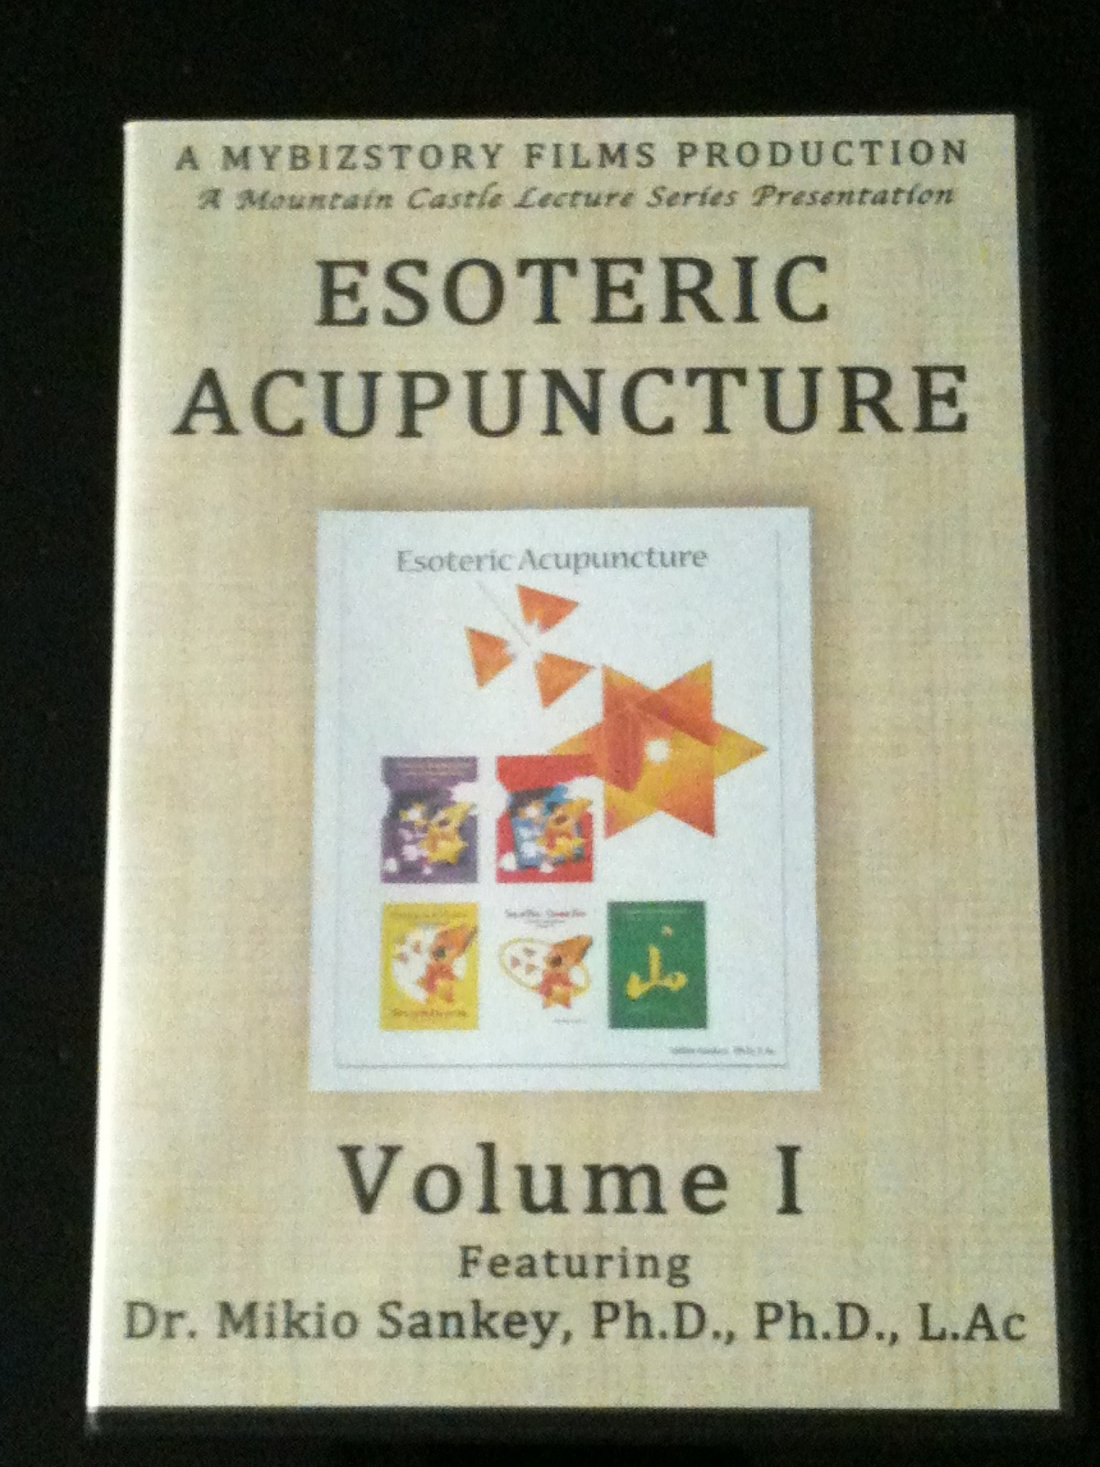 Esoteric Acupuncture Volume I